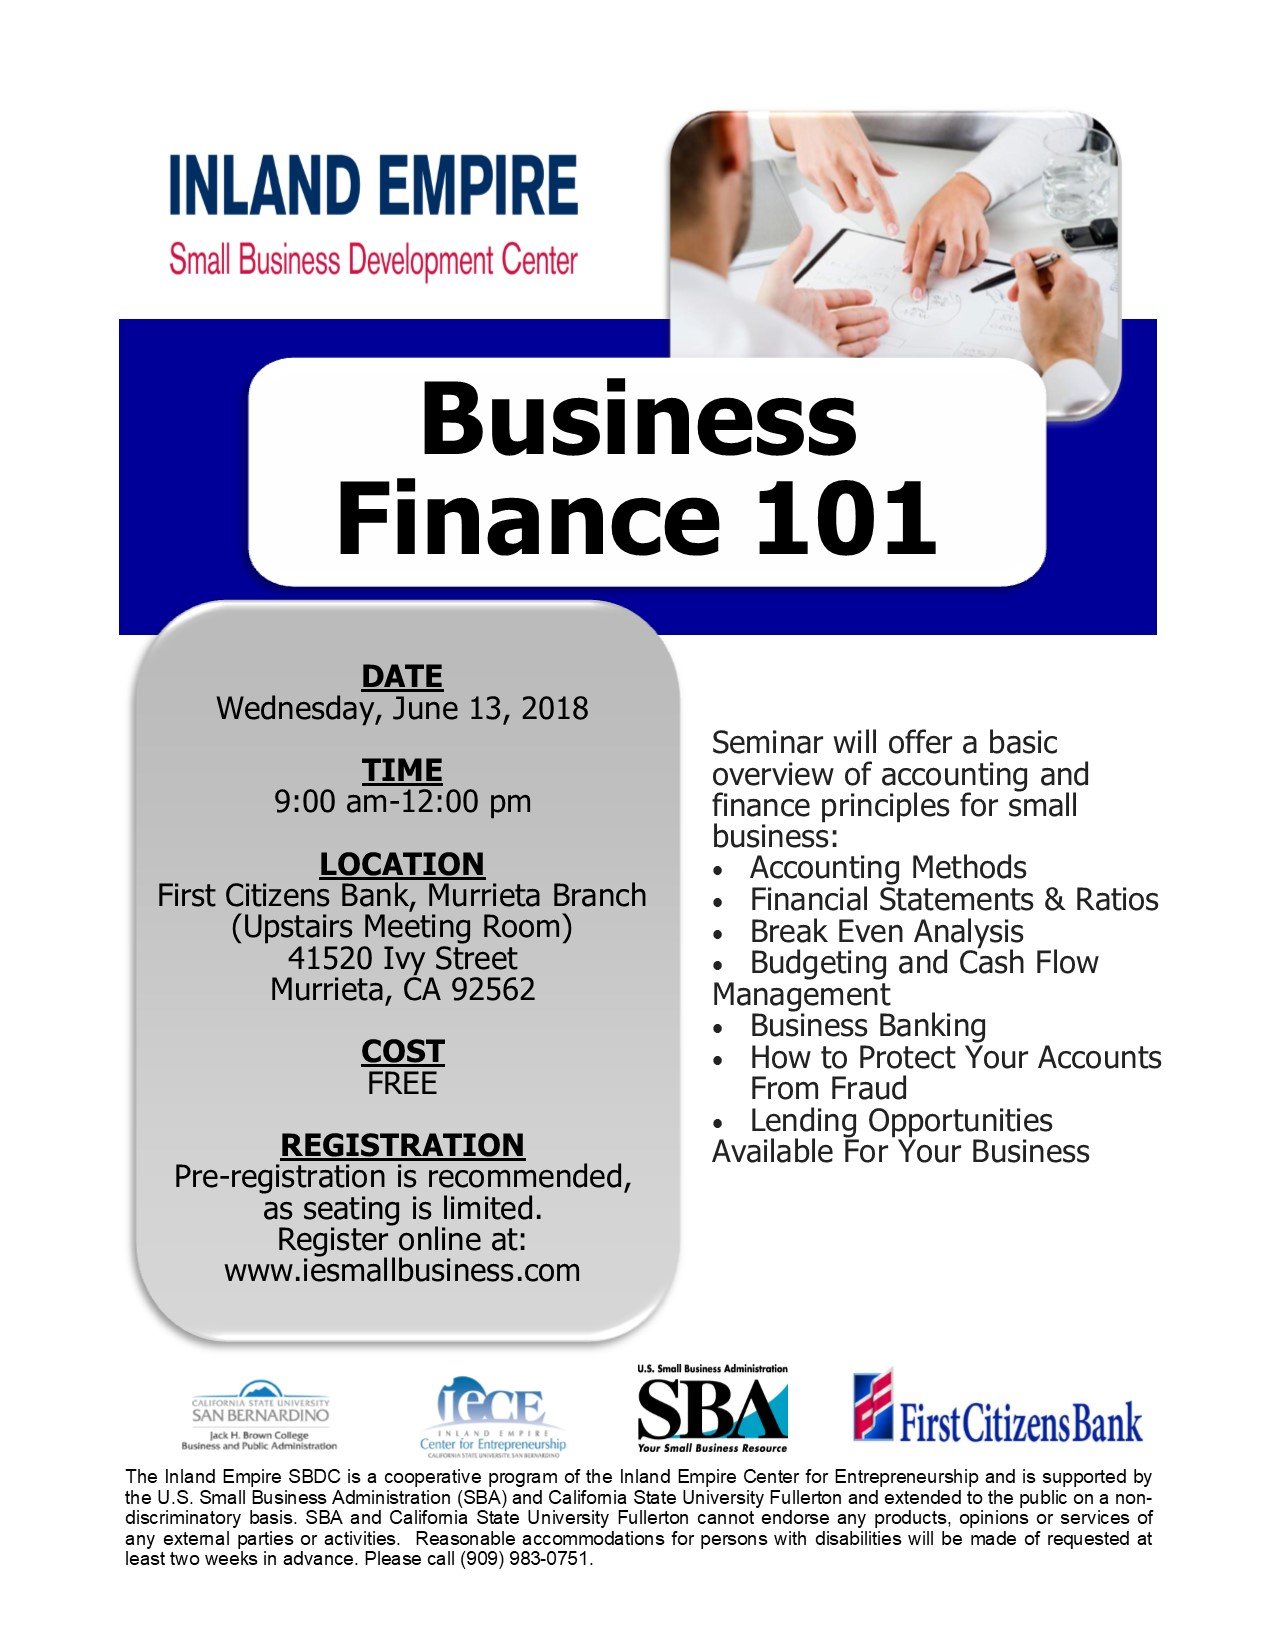 Inland Empire Small Business Development Center Business Finance 101 @ First Citizens Bank (Murrieta Branch) | Murrieta | California | United States